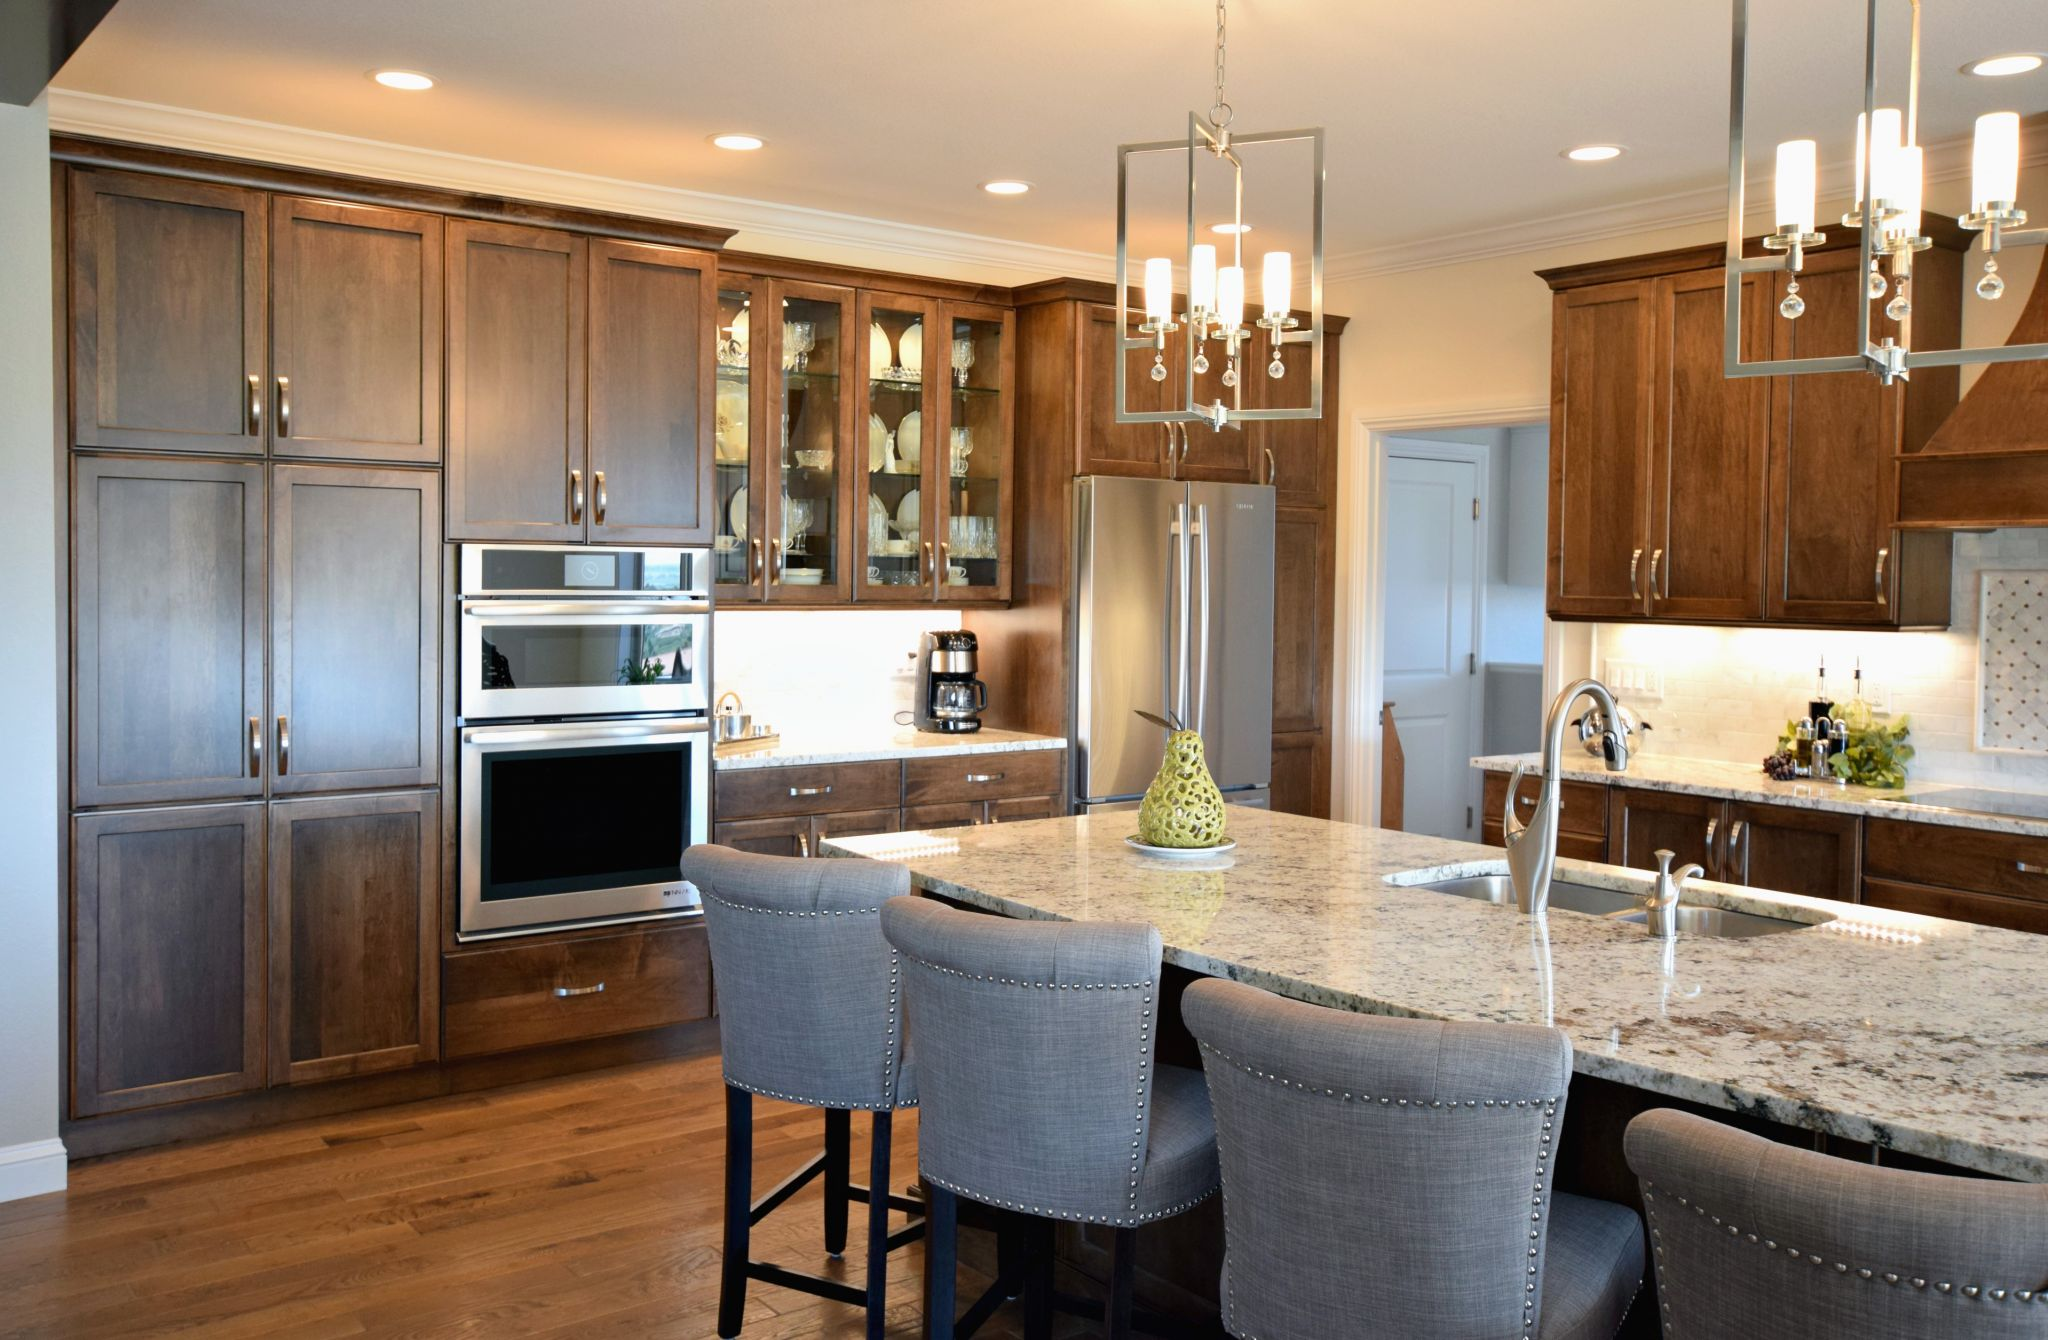 Transitional Design The Best Of Both Worlds Bkc Kitchen And Bath